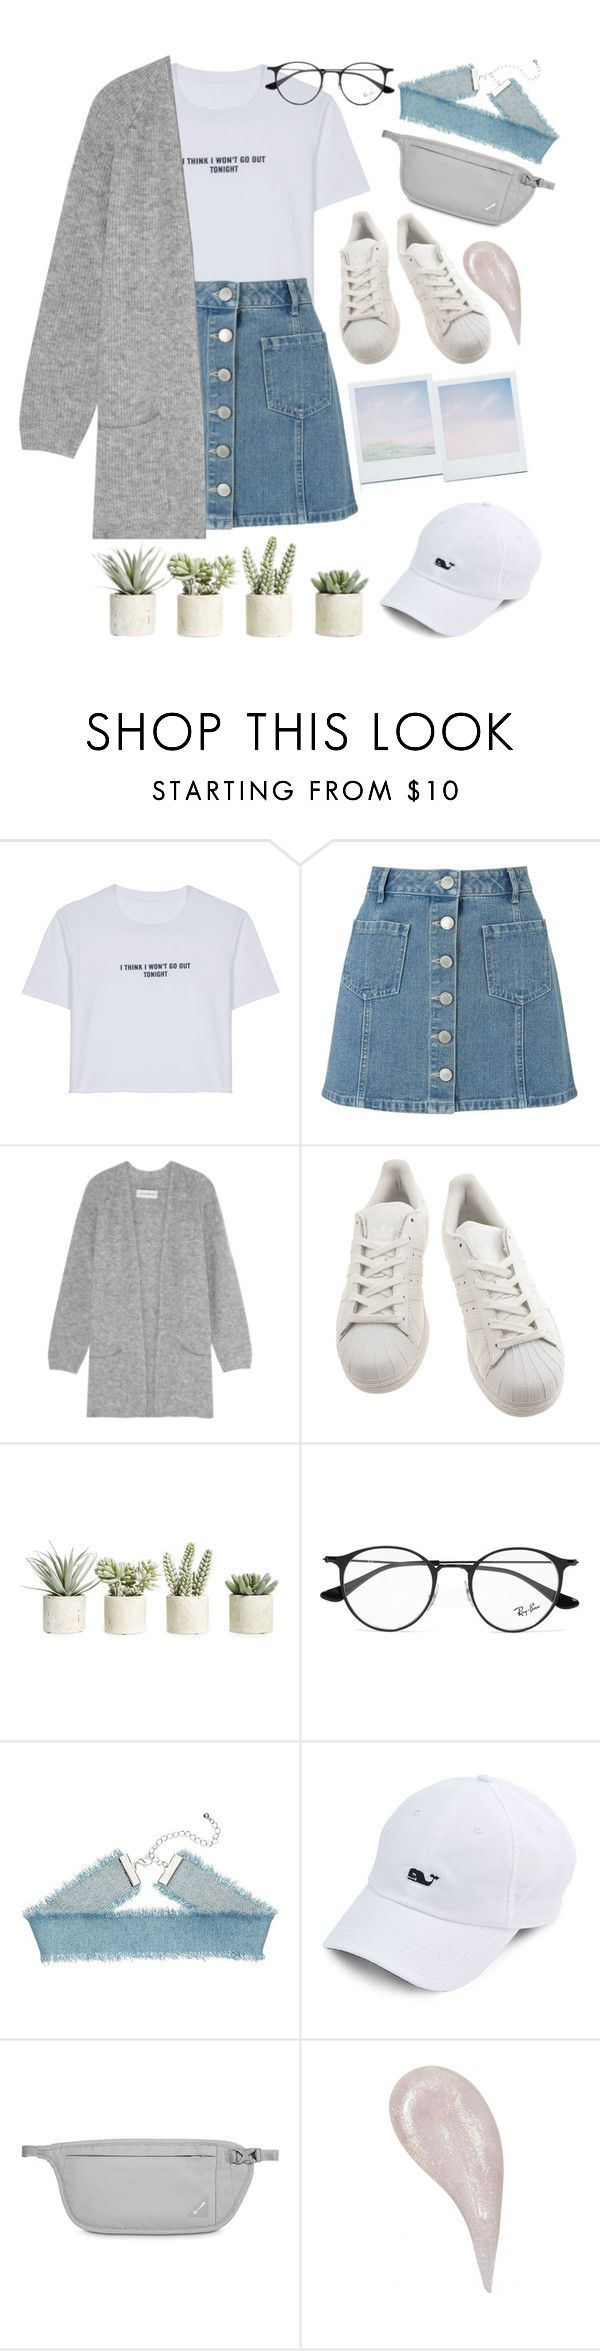 """""""Untitled #41"""" by lisajeff ❤ liked on Polyvore featuring WithChic, Miss Selfridge, By Malene Birger, adidas, Allstate Floral, Holga, Ray-Ban and Pacsafe"""